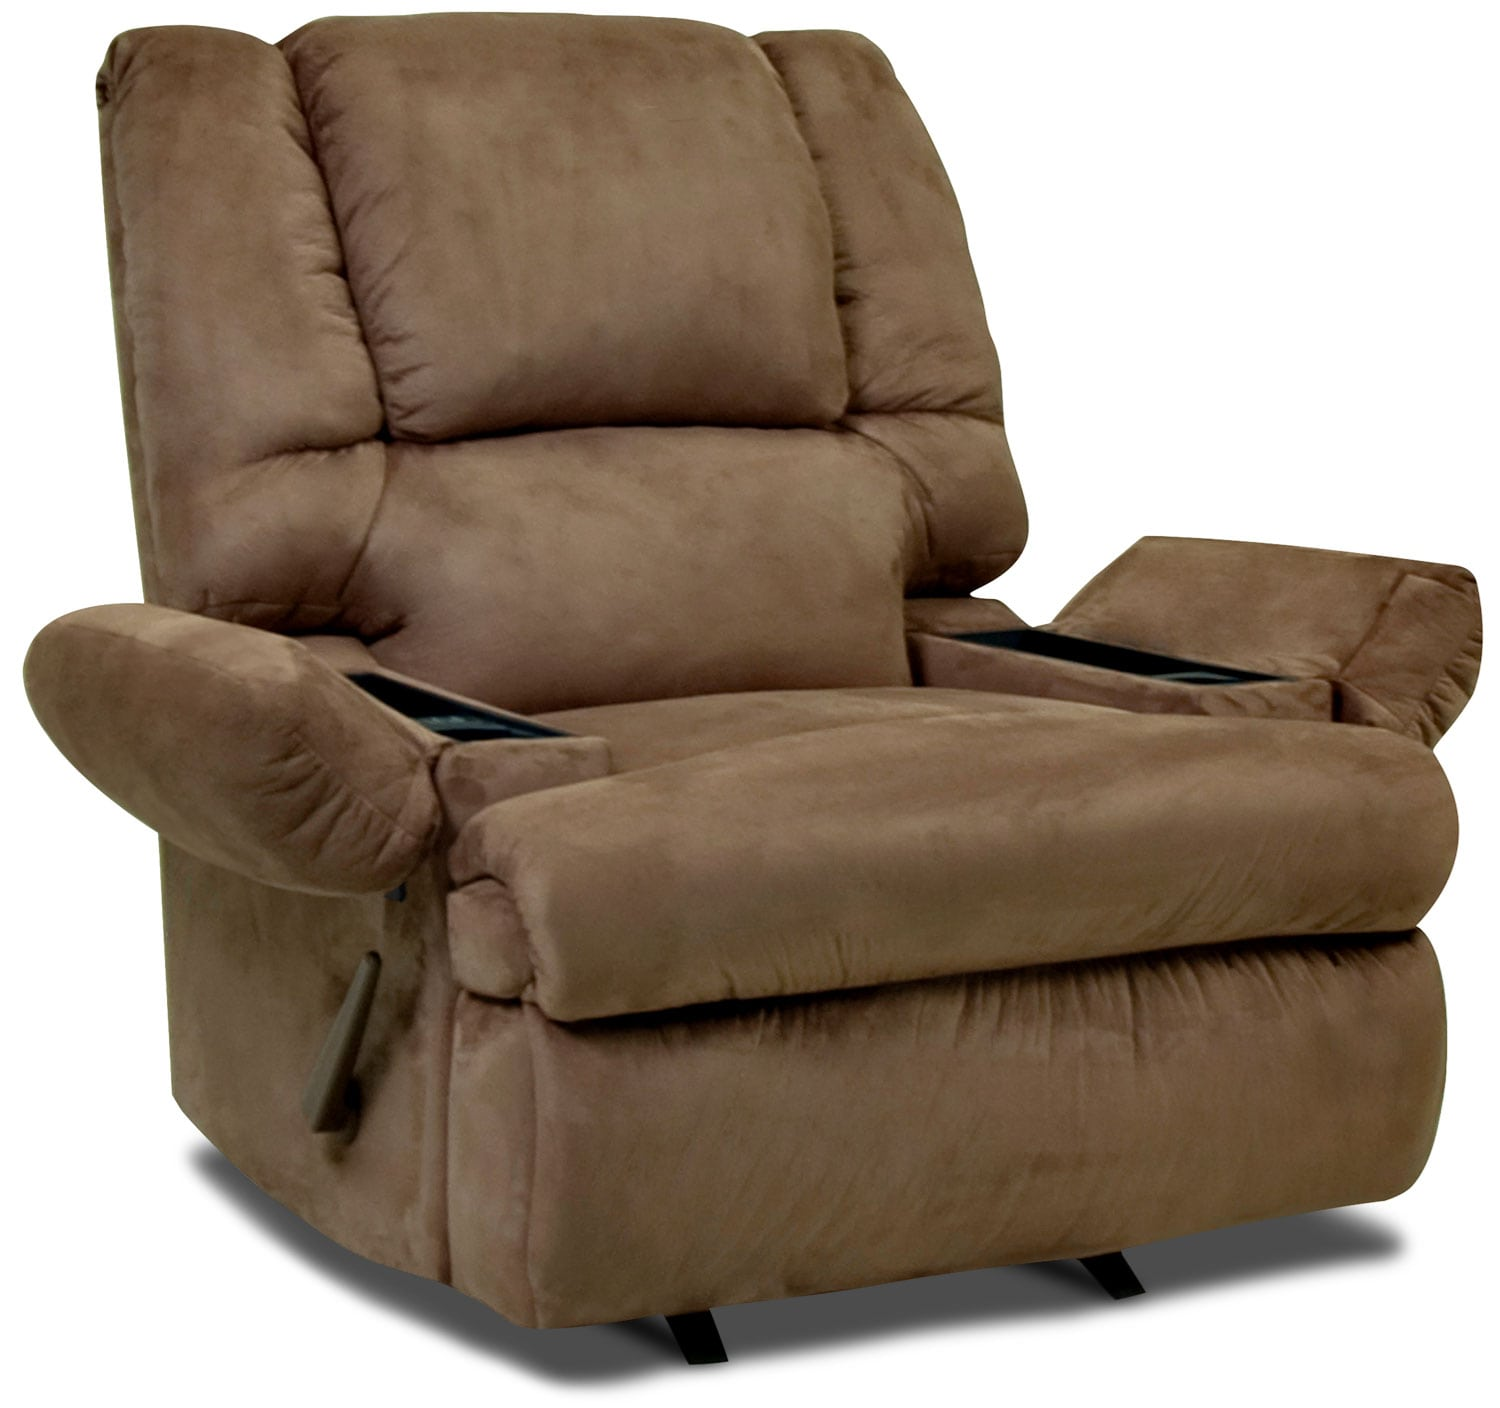 Living Room Furniture - Designed2B Recliner 5598 Padded Suede Massage Recliner with Storage Arms - Mocha